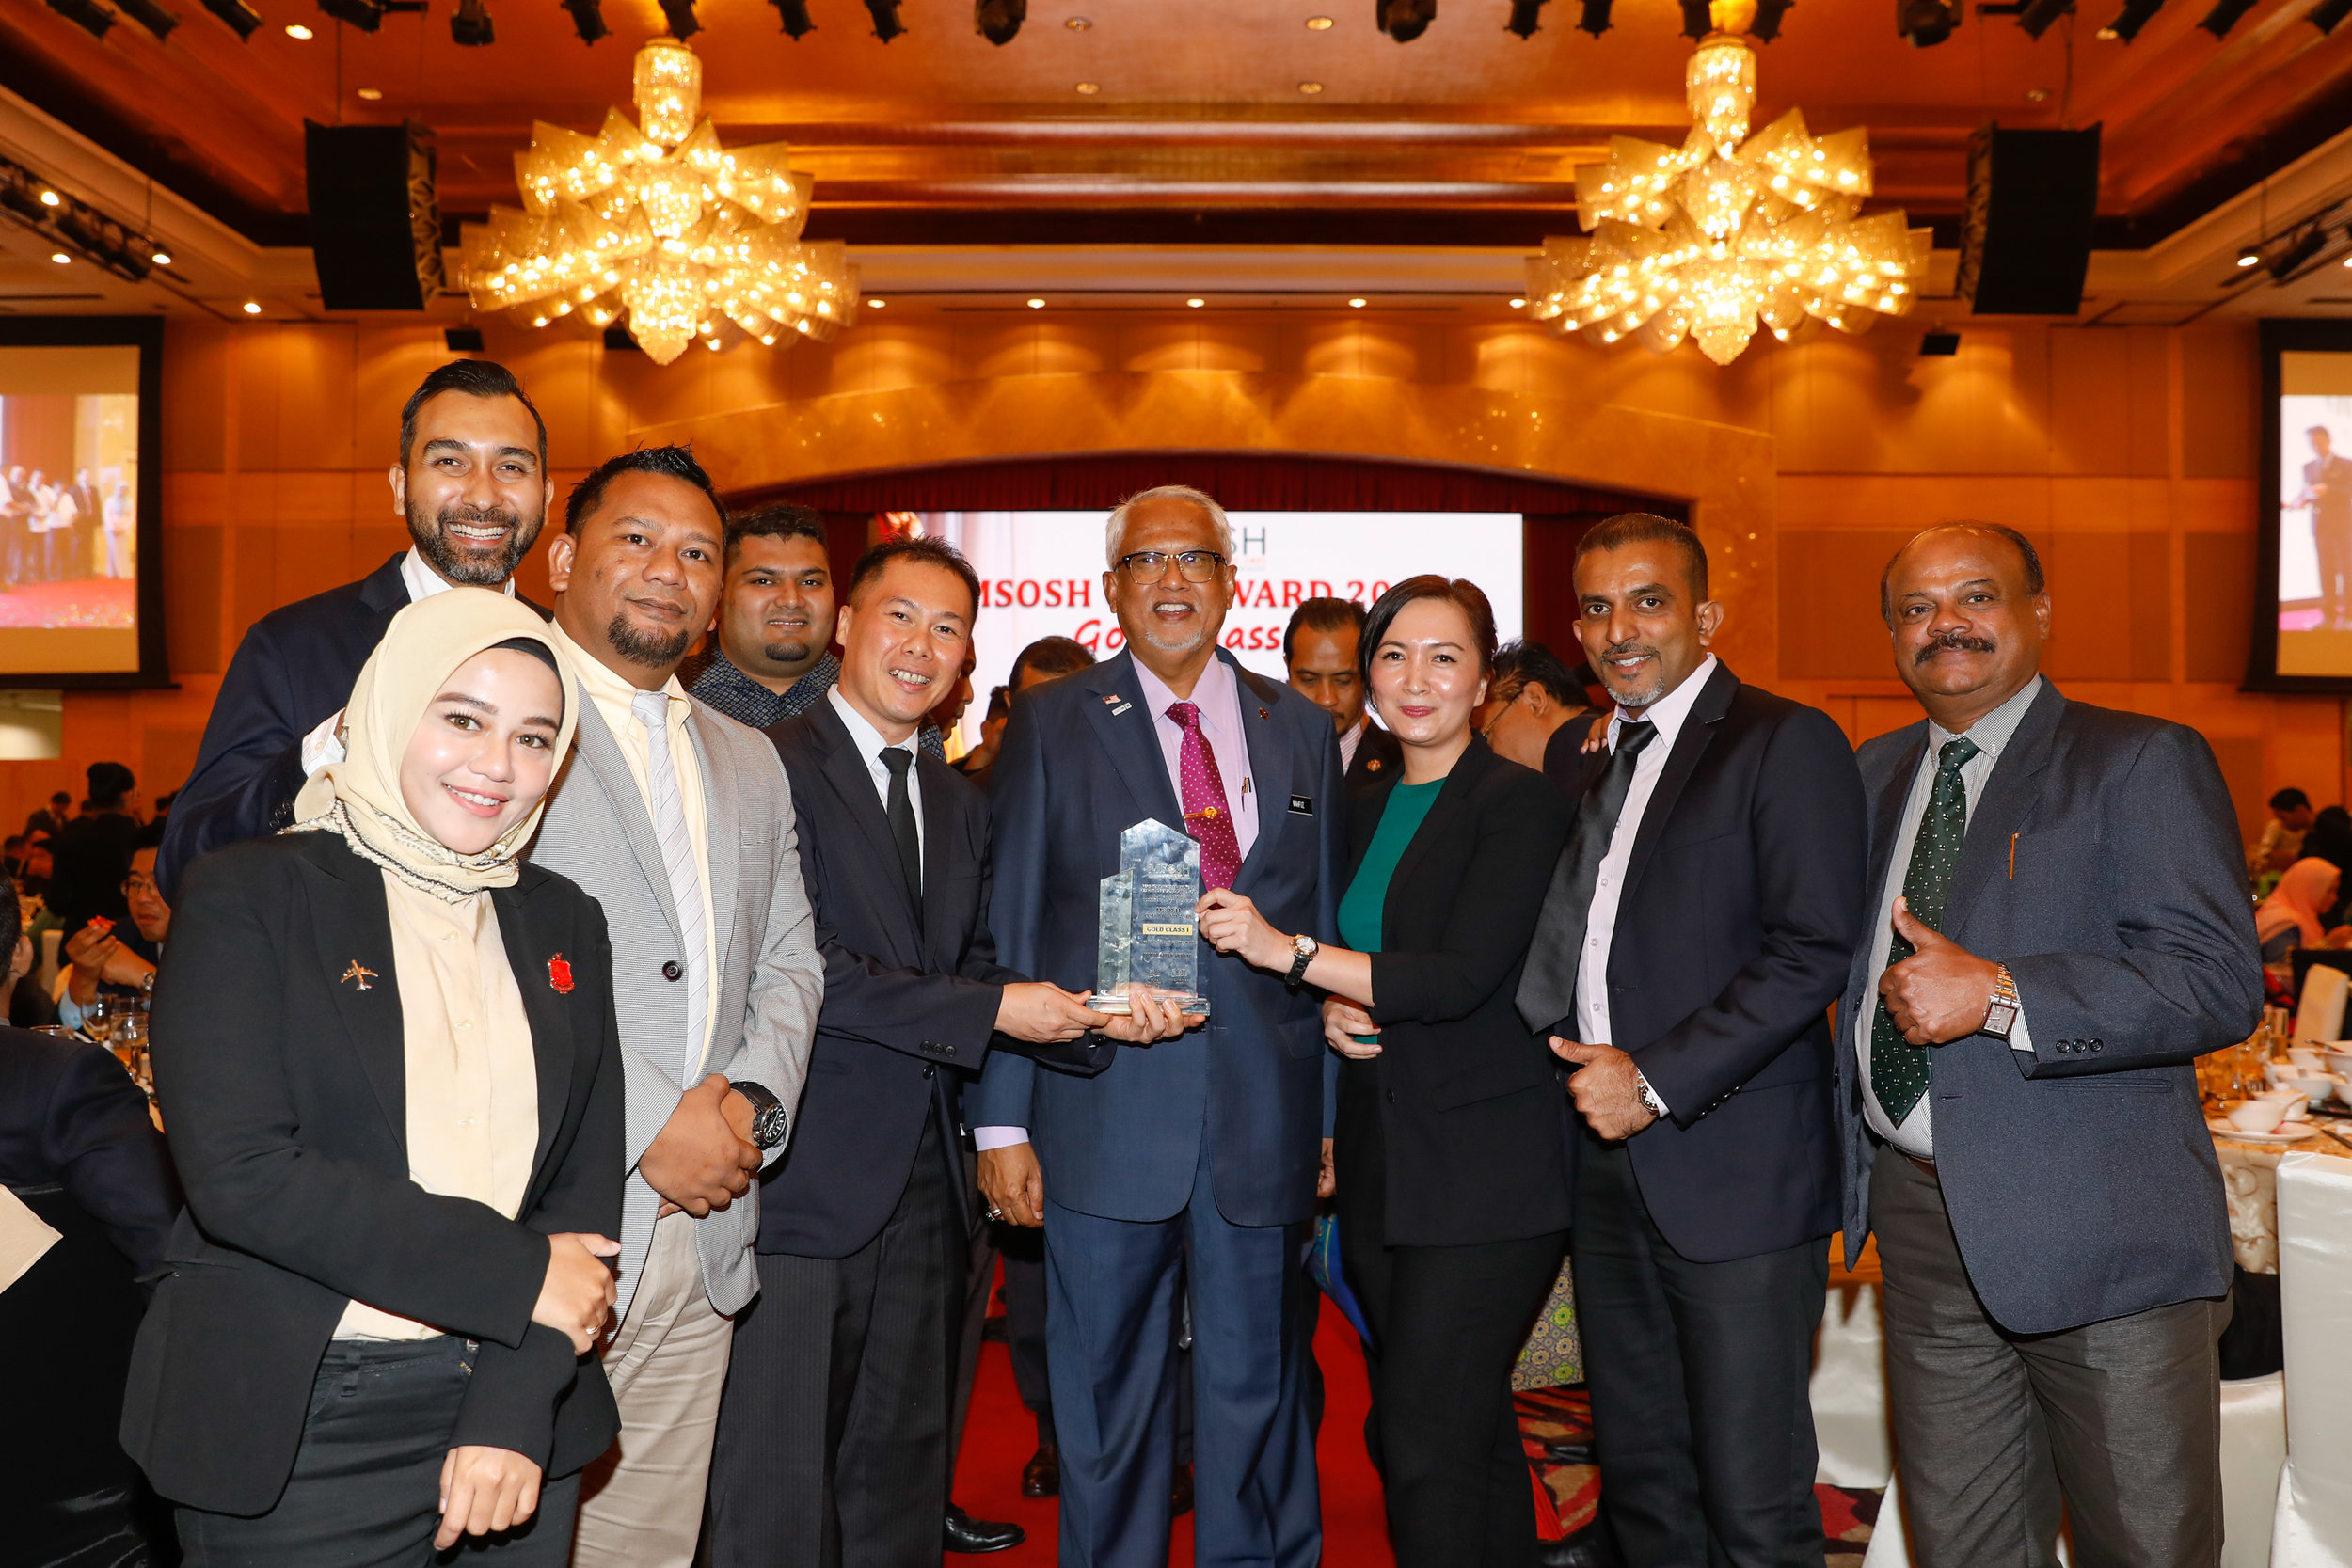 Photo Caption : (Fifth from left) AirAsia Group Head of Safety Captain Ling Liong Tien with Malaysia's Deputy Minister of Human Resources, YB Dato' Hj Mahfuz Omar and the rest of AirAsia's safety team at the Malaysian Society of Occupational Safety and Health Award 2019.